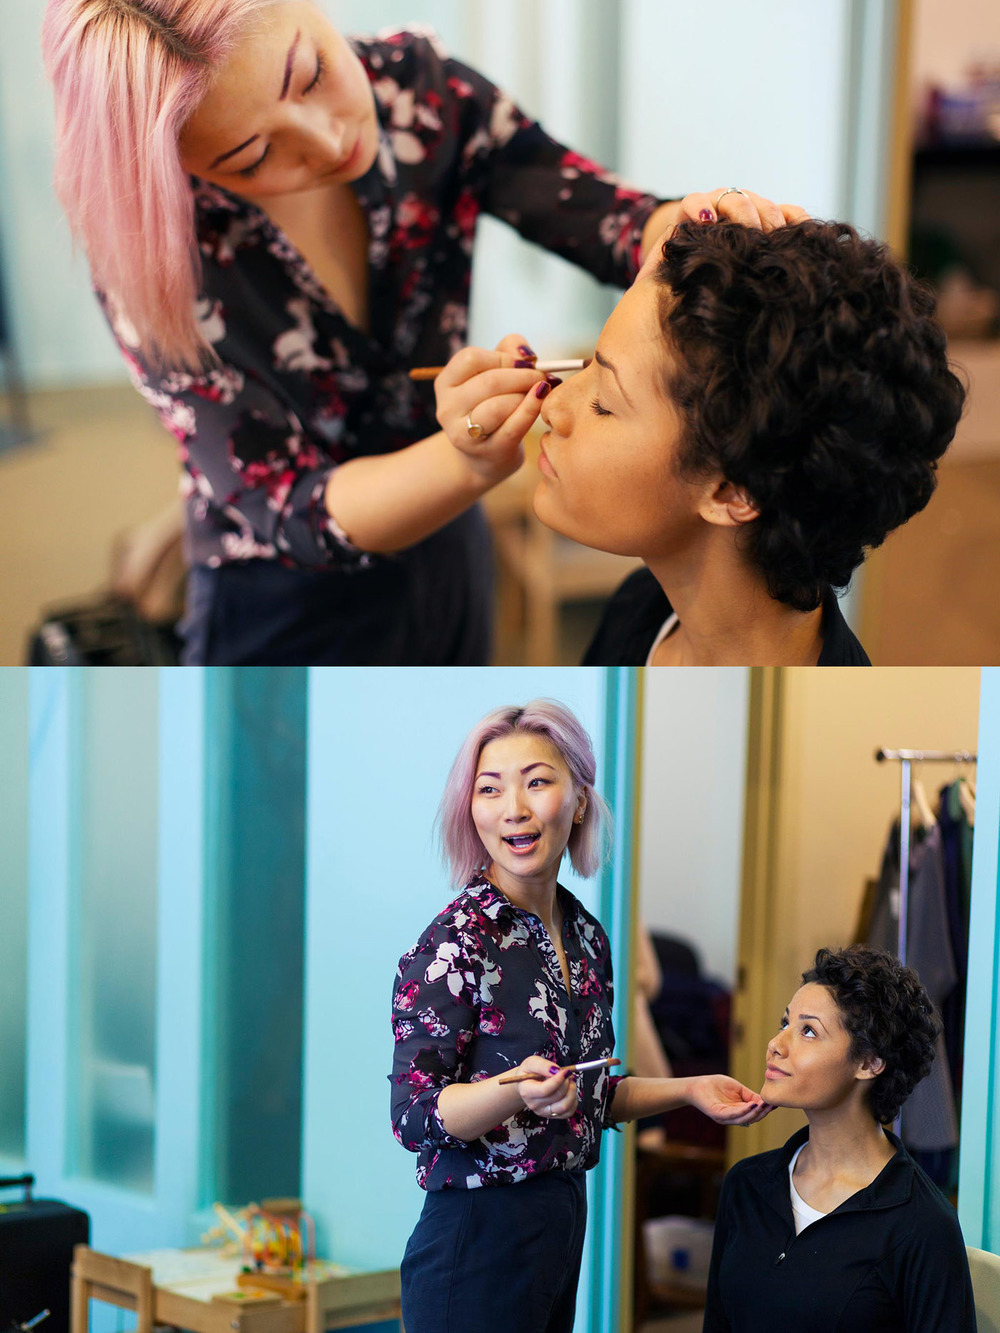 We had a great makeup artist, Anna Wu, working with us for the whole shoot. In these snapshots she is working on Alyssa for one of the featured look days.